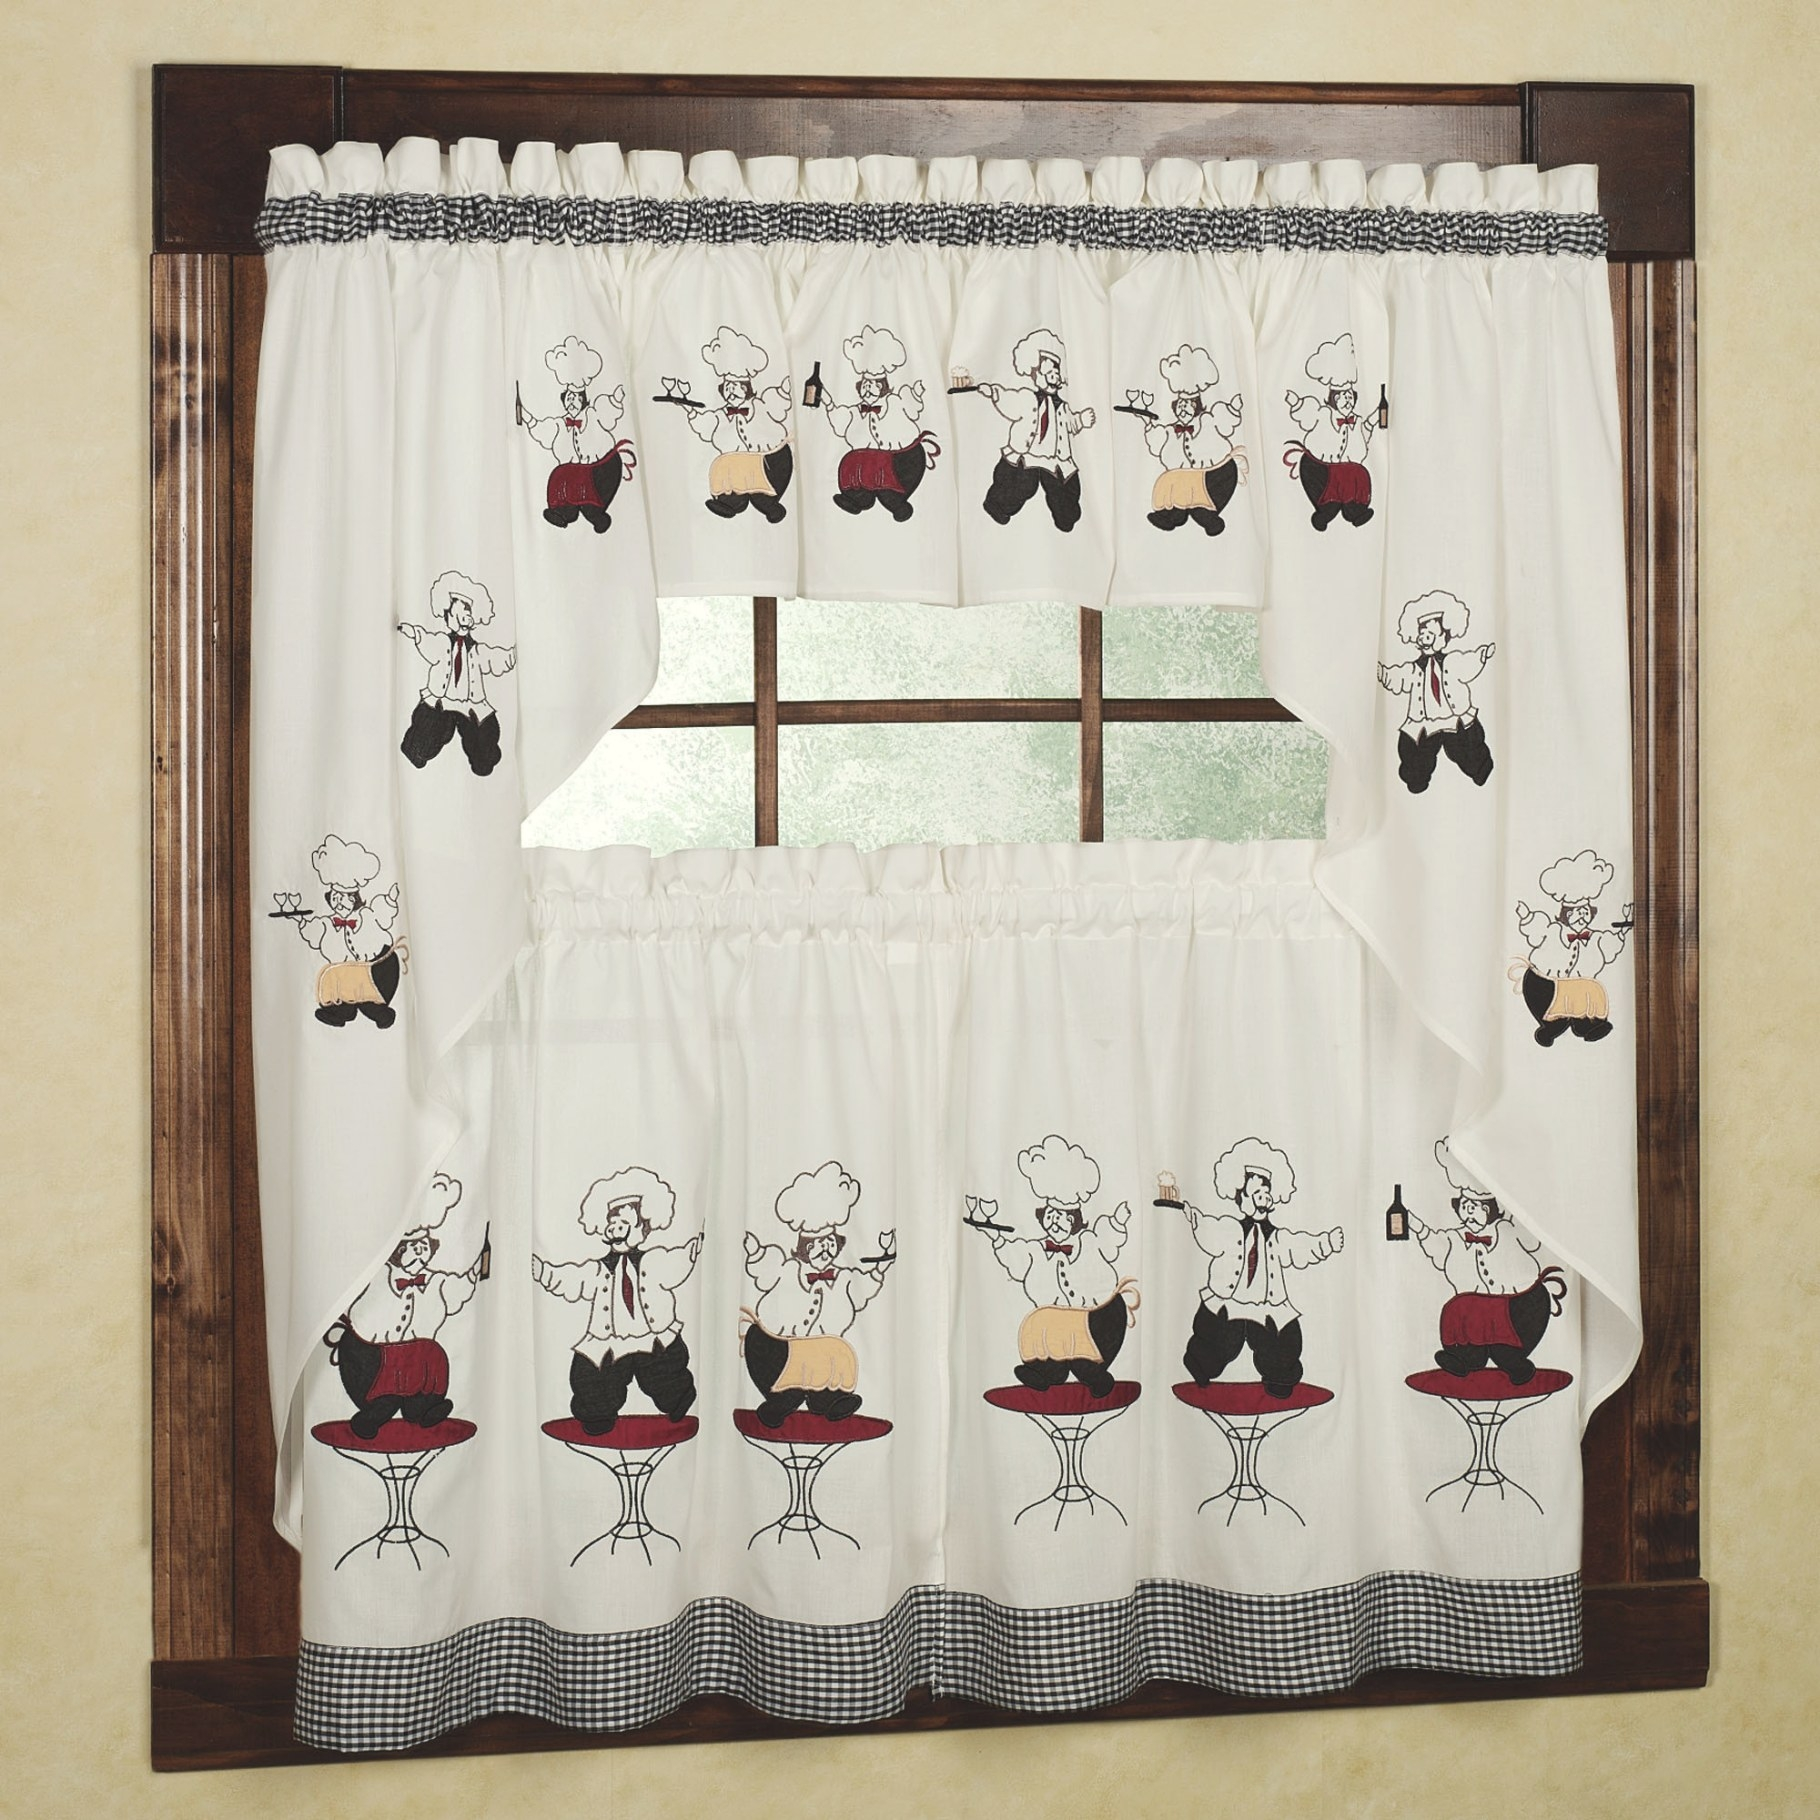 Chef Kitchen Curtains Images, Where To Buy? » Kitchen Of intended for Where To Buy Curtains